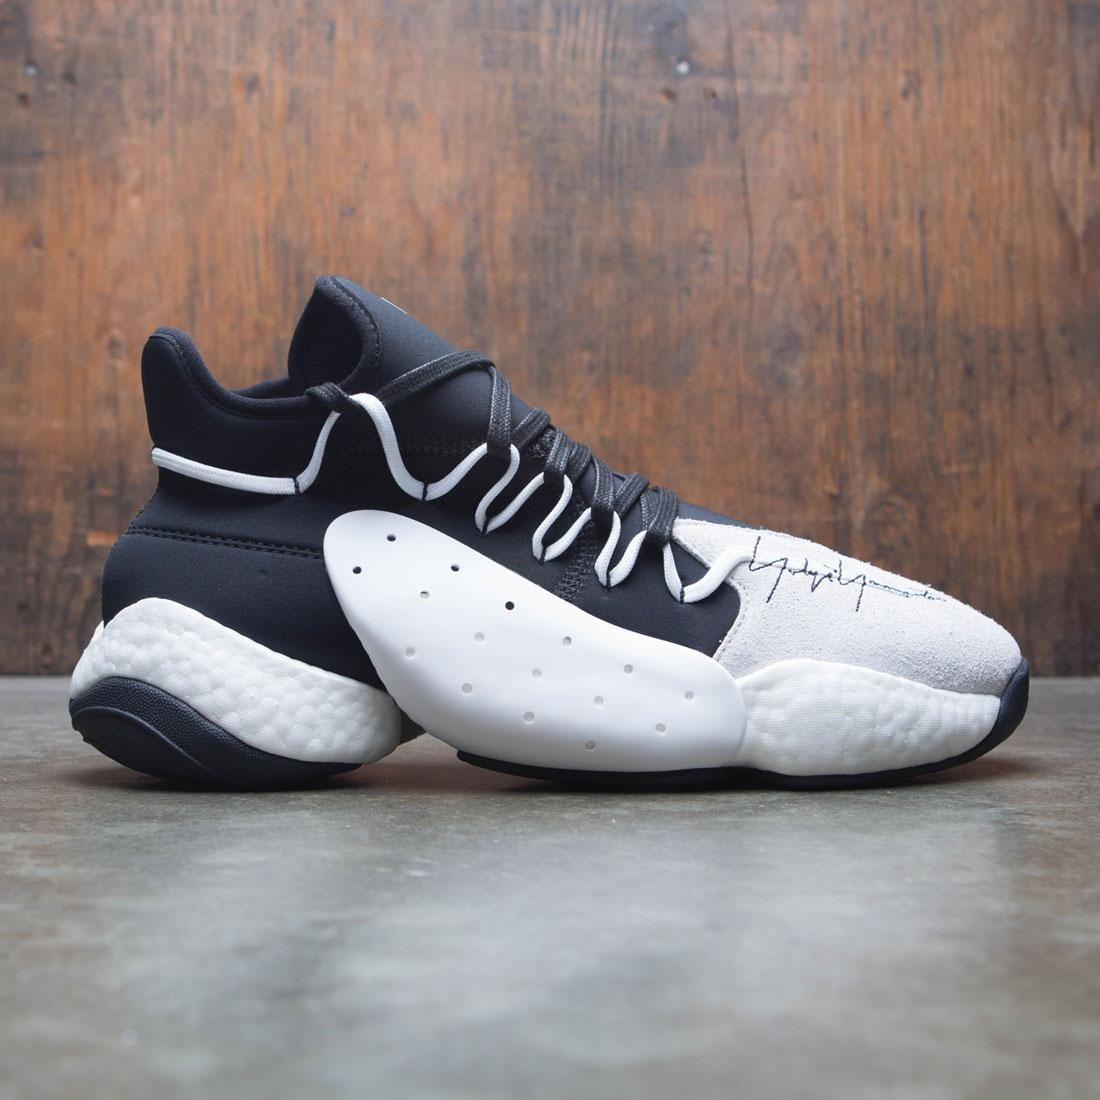 Adidas Y-3 Men BYW Bball (white / black)